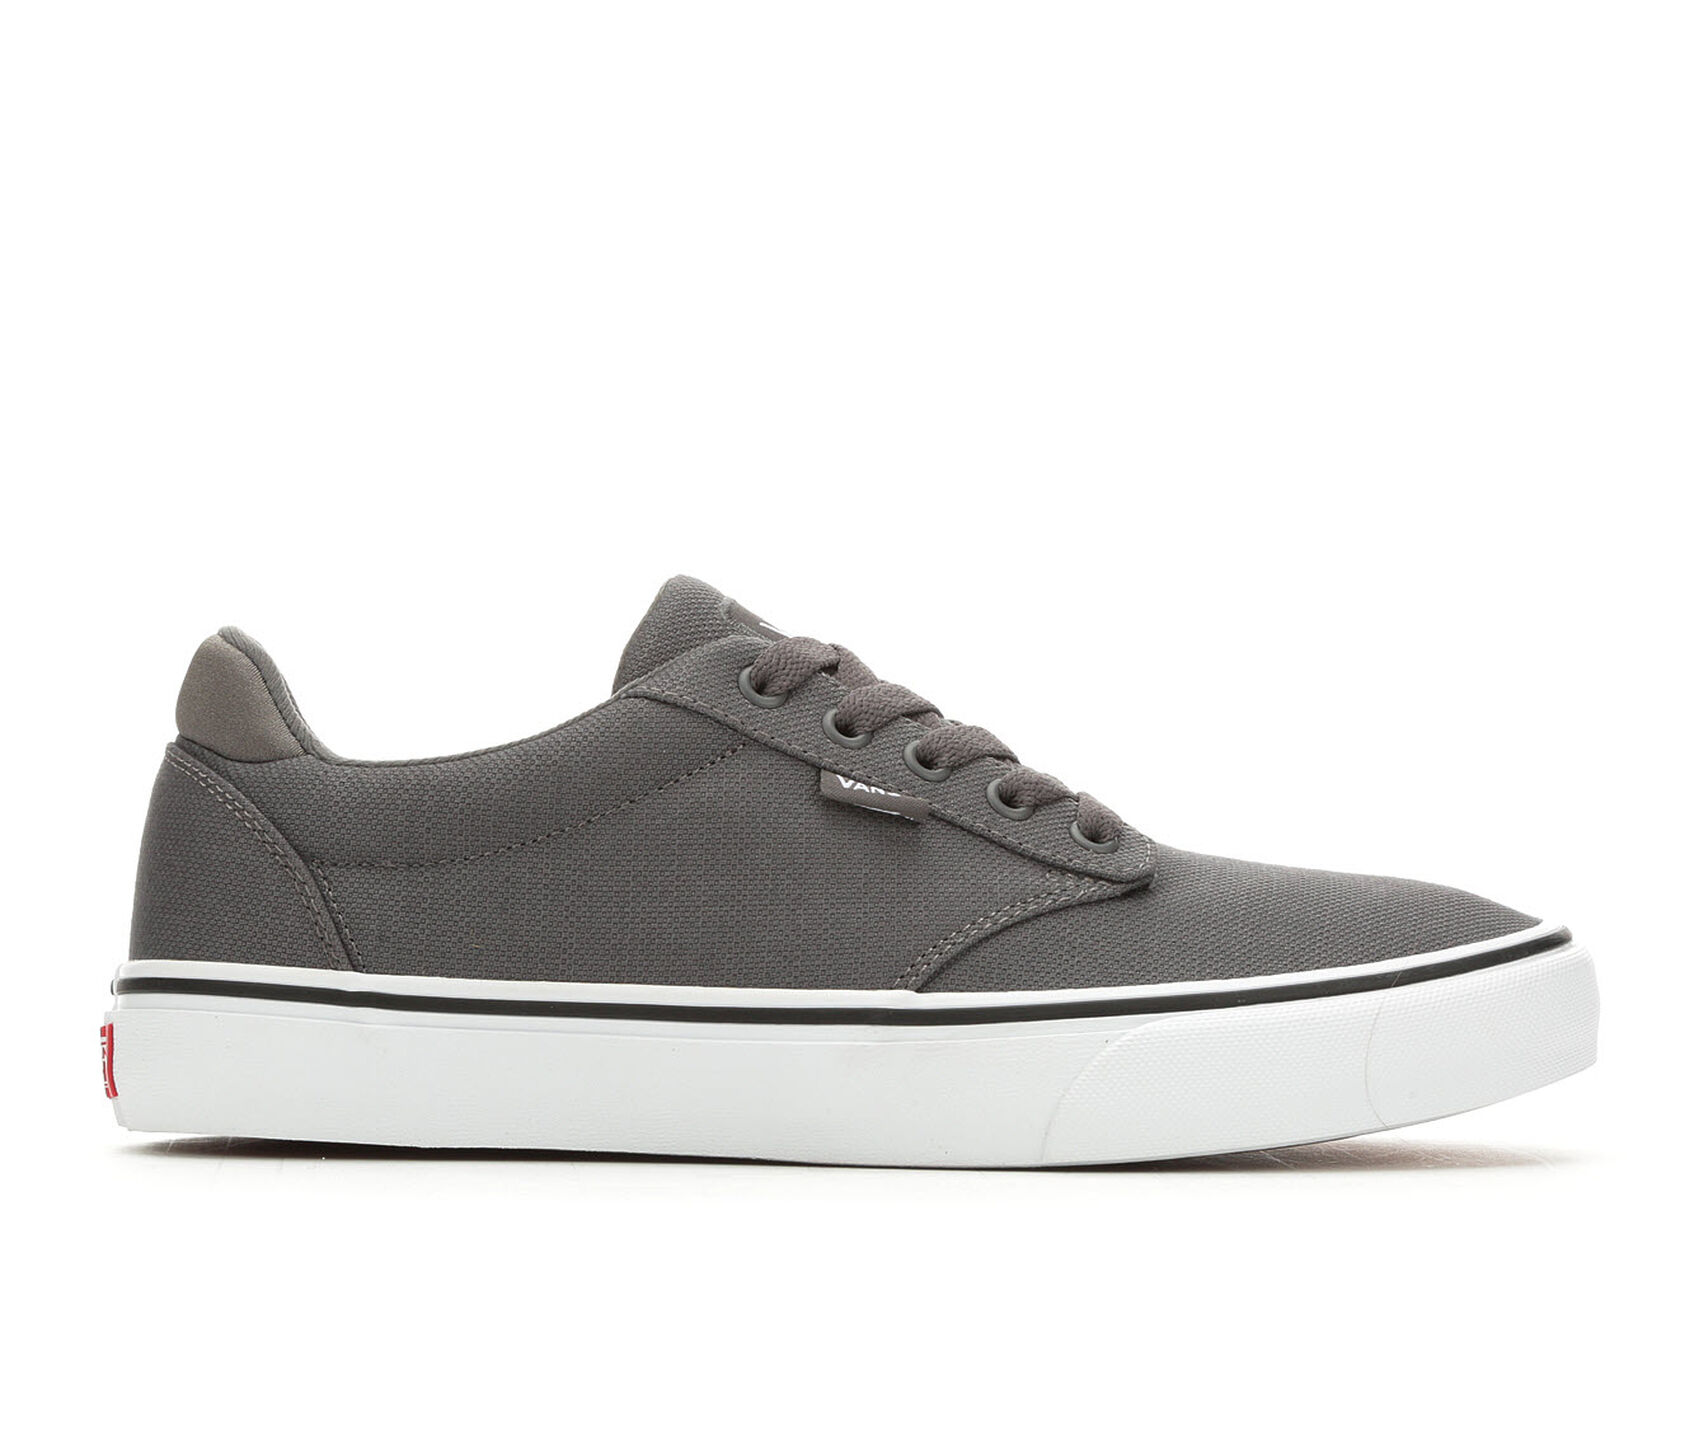 521ff43598 ... Vans Atwood Deluxe Skate Shoes. Previous